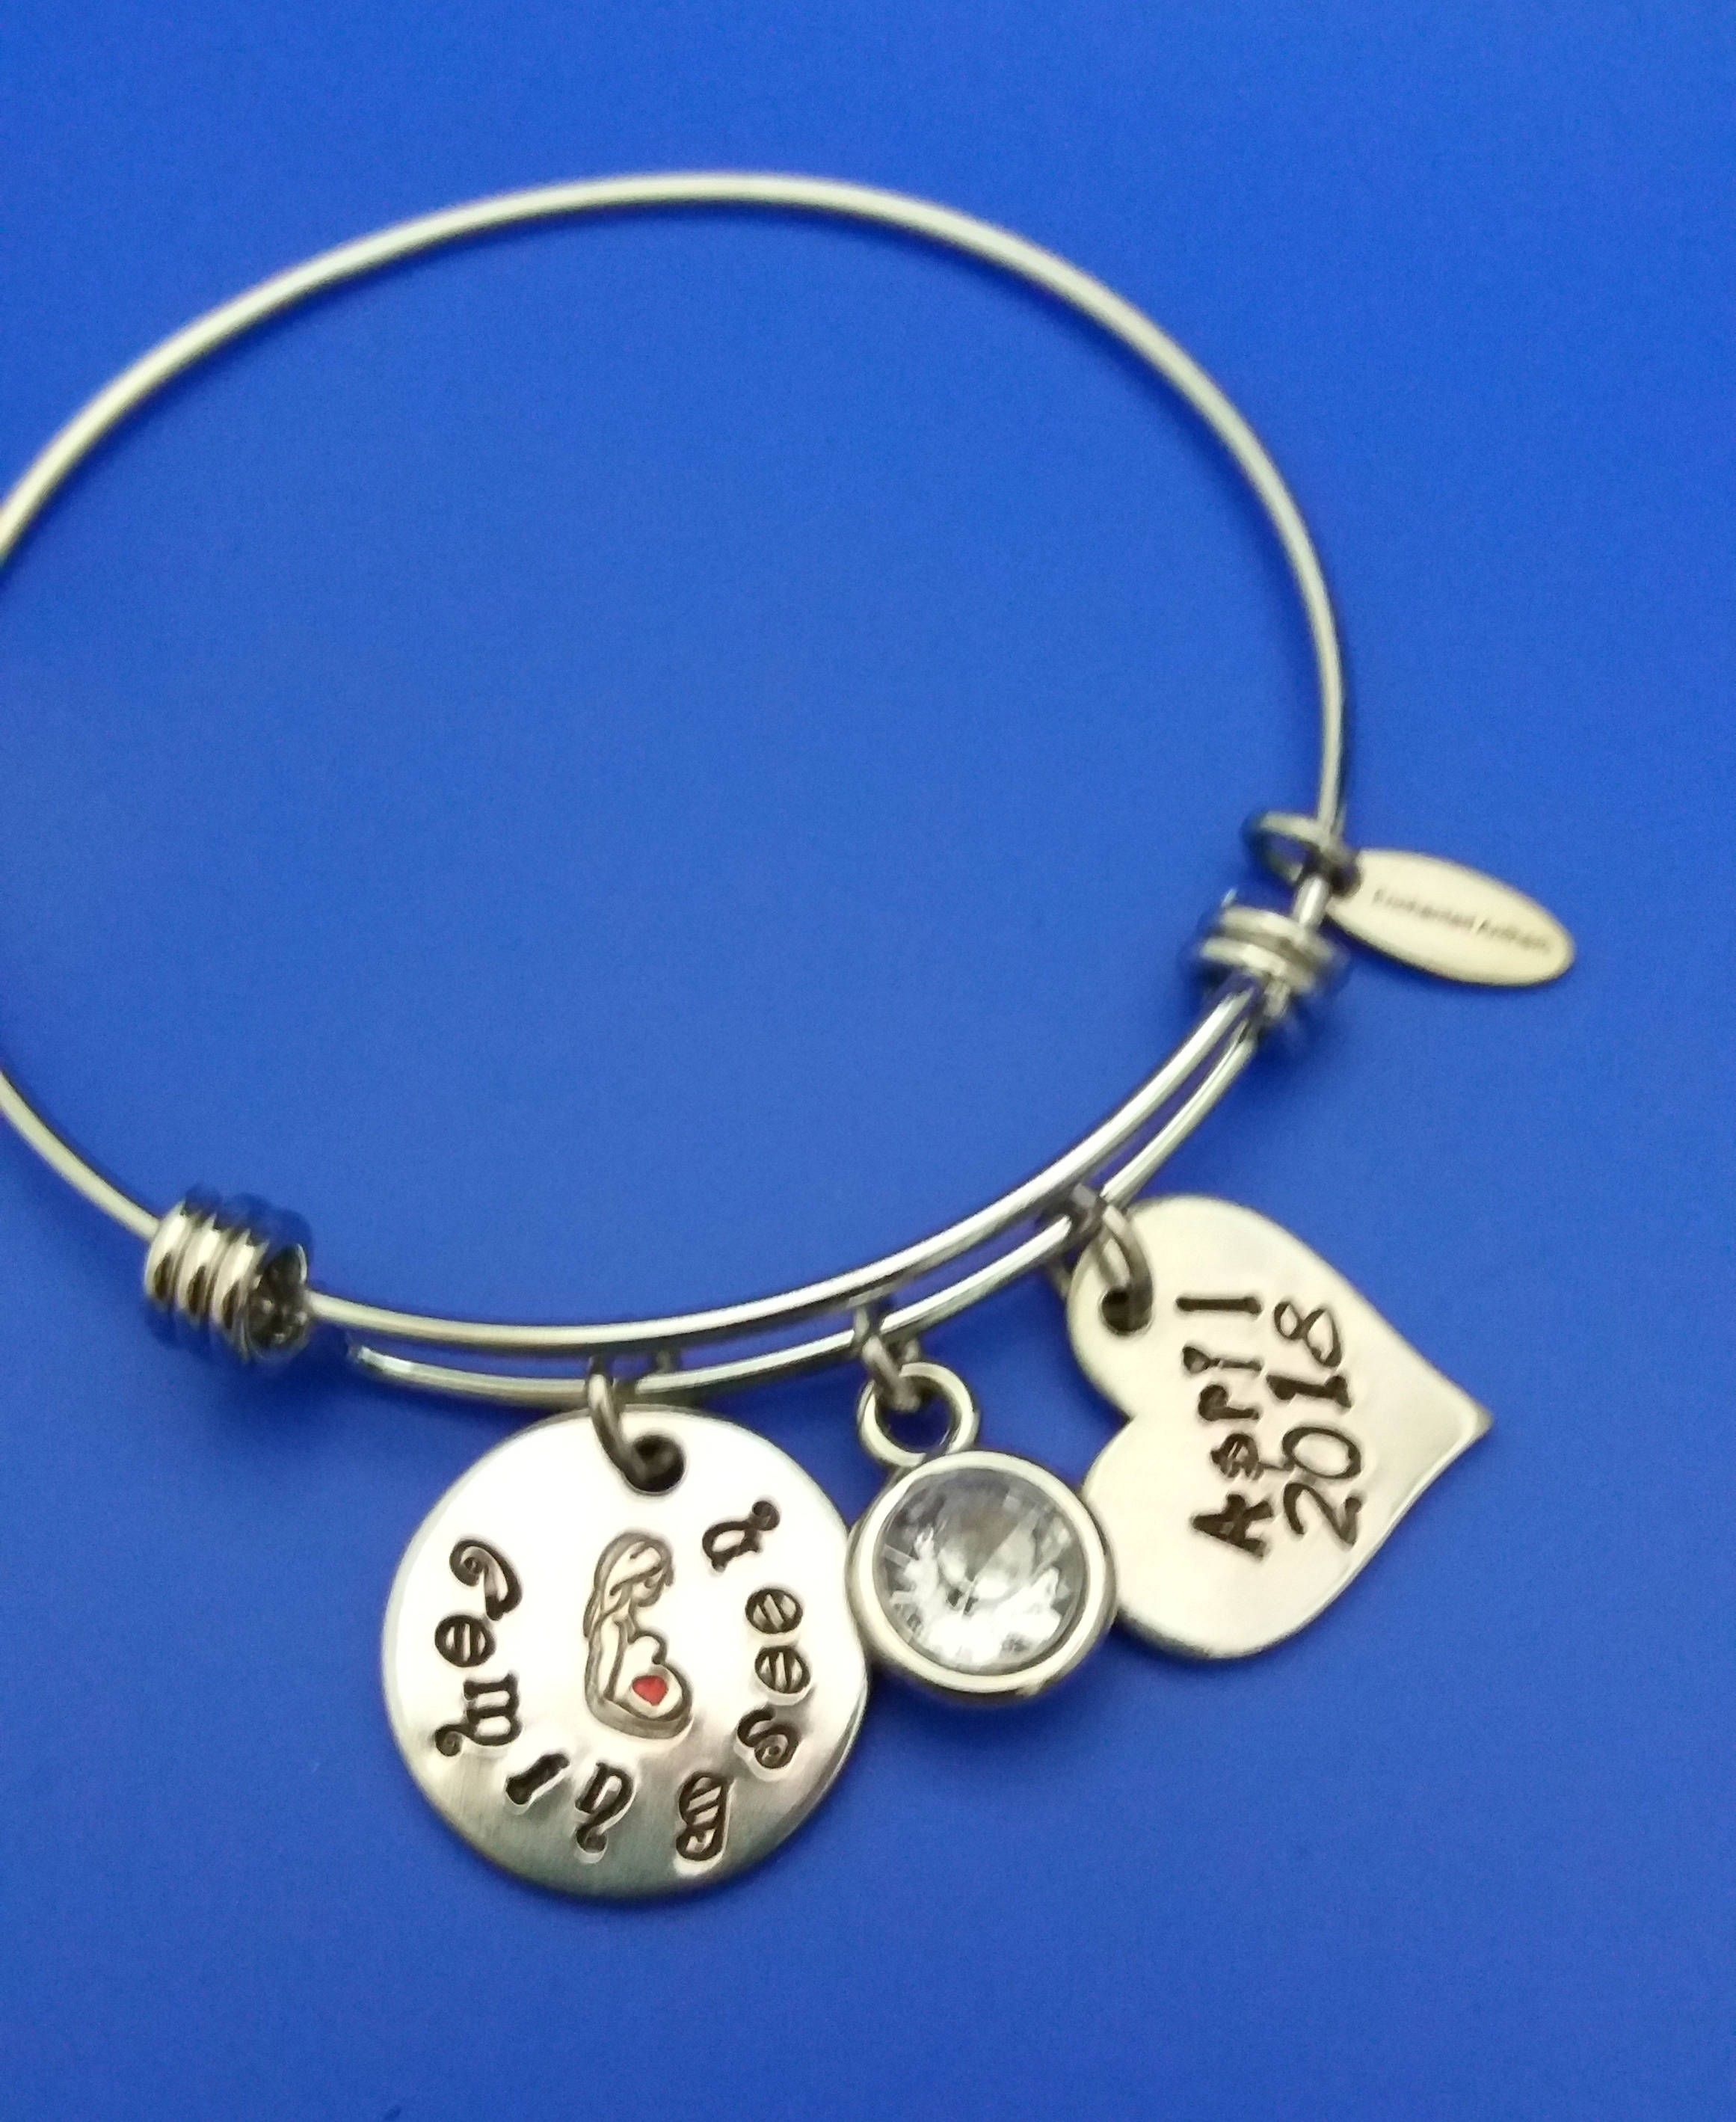 mother bracelet moms bonus are jewelry gifts pin special from stepmom heaven